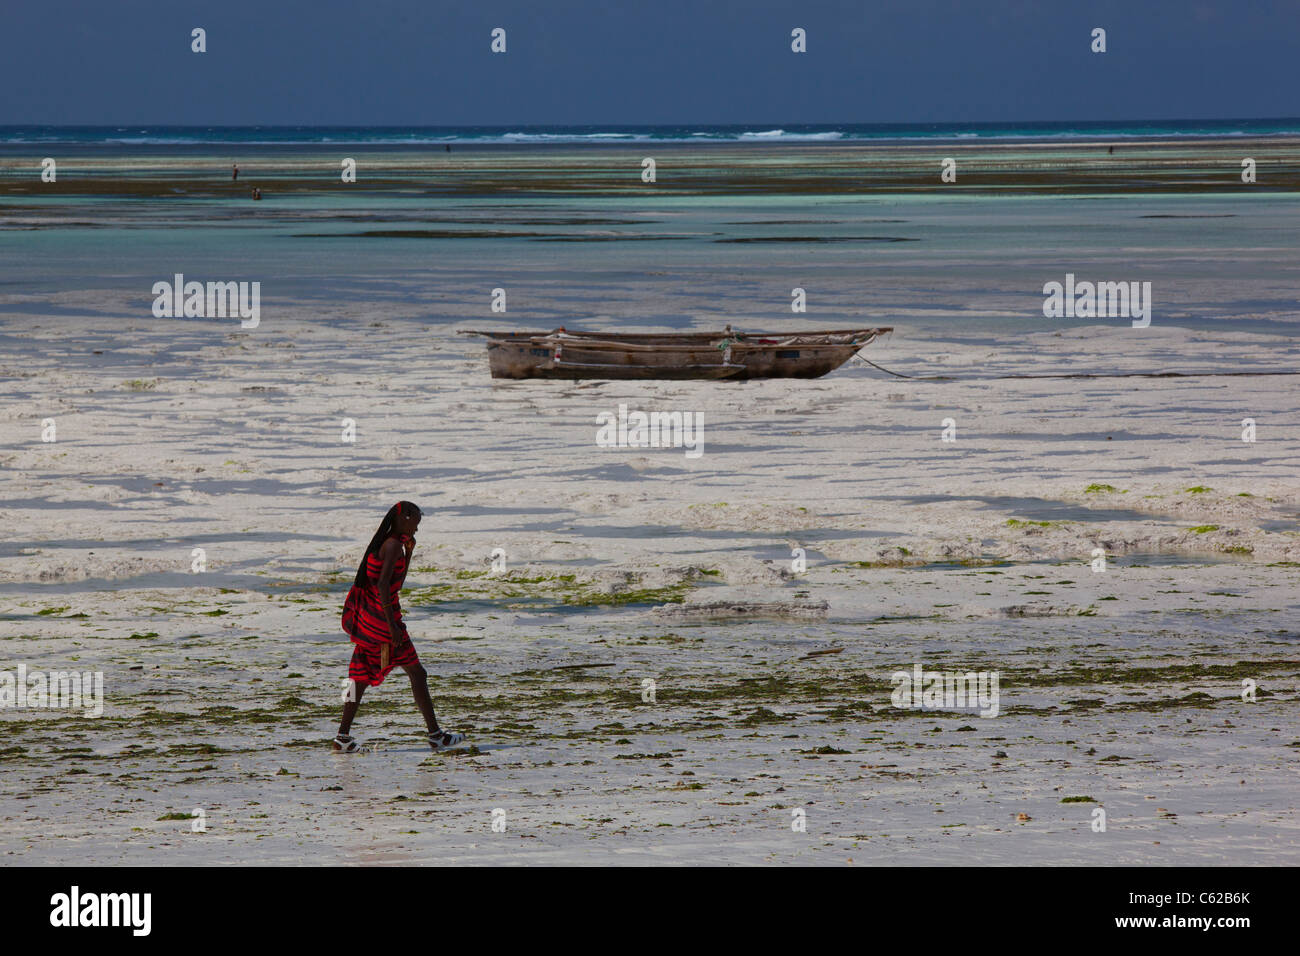 A man dressed in traditional Masai clothes walking on the beach in Zanzibar, Tansania. - Stock Image